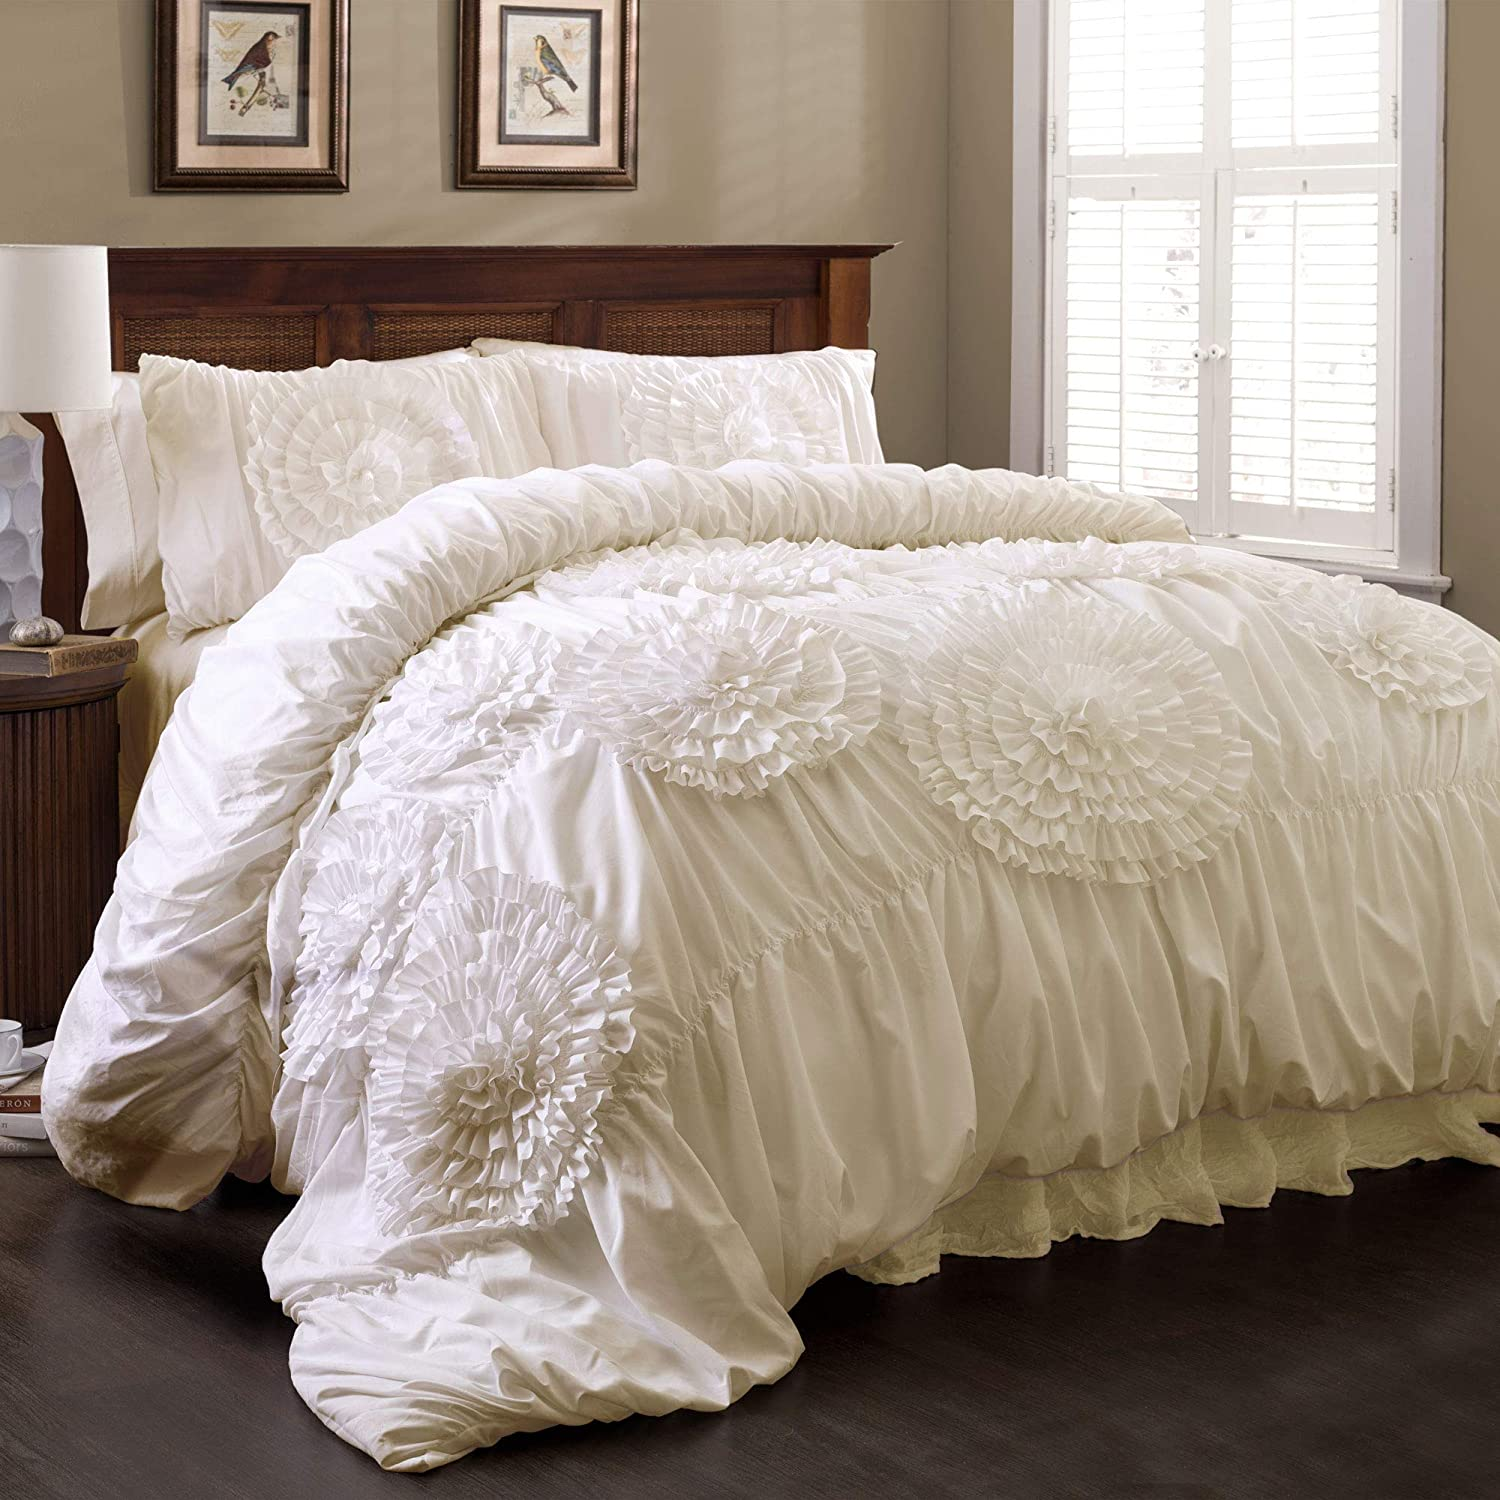 Lush Decor Serena Comforter Ivory Ruched Flower 3 Piece Set, King,